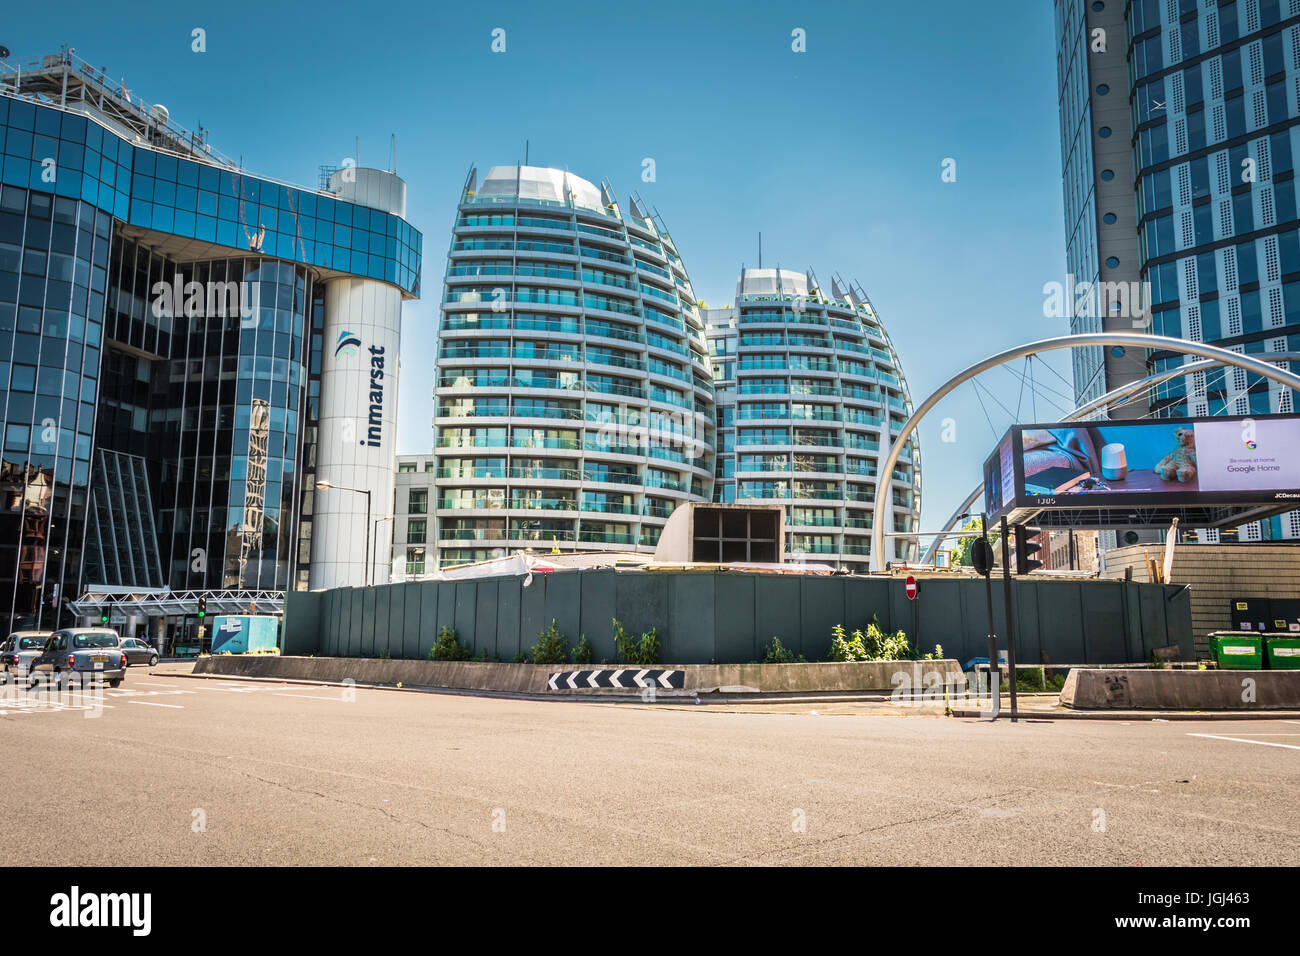 Silicon Roundabout in Old Street, London, UK, a digital hub for technology in the City of London, U.K. Stock Photo